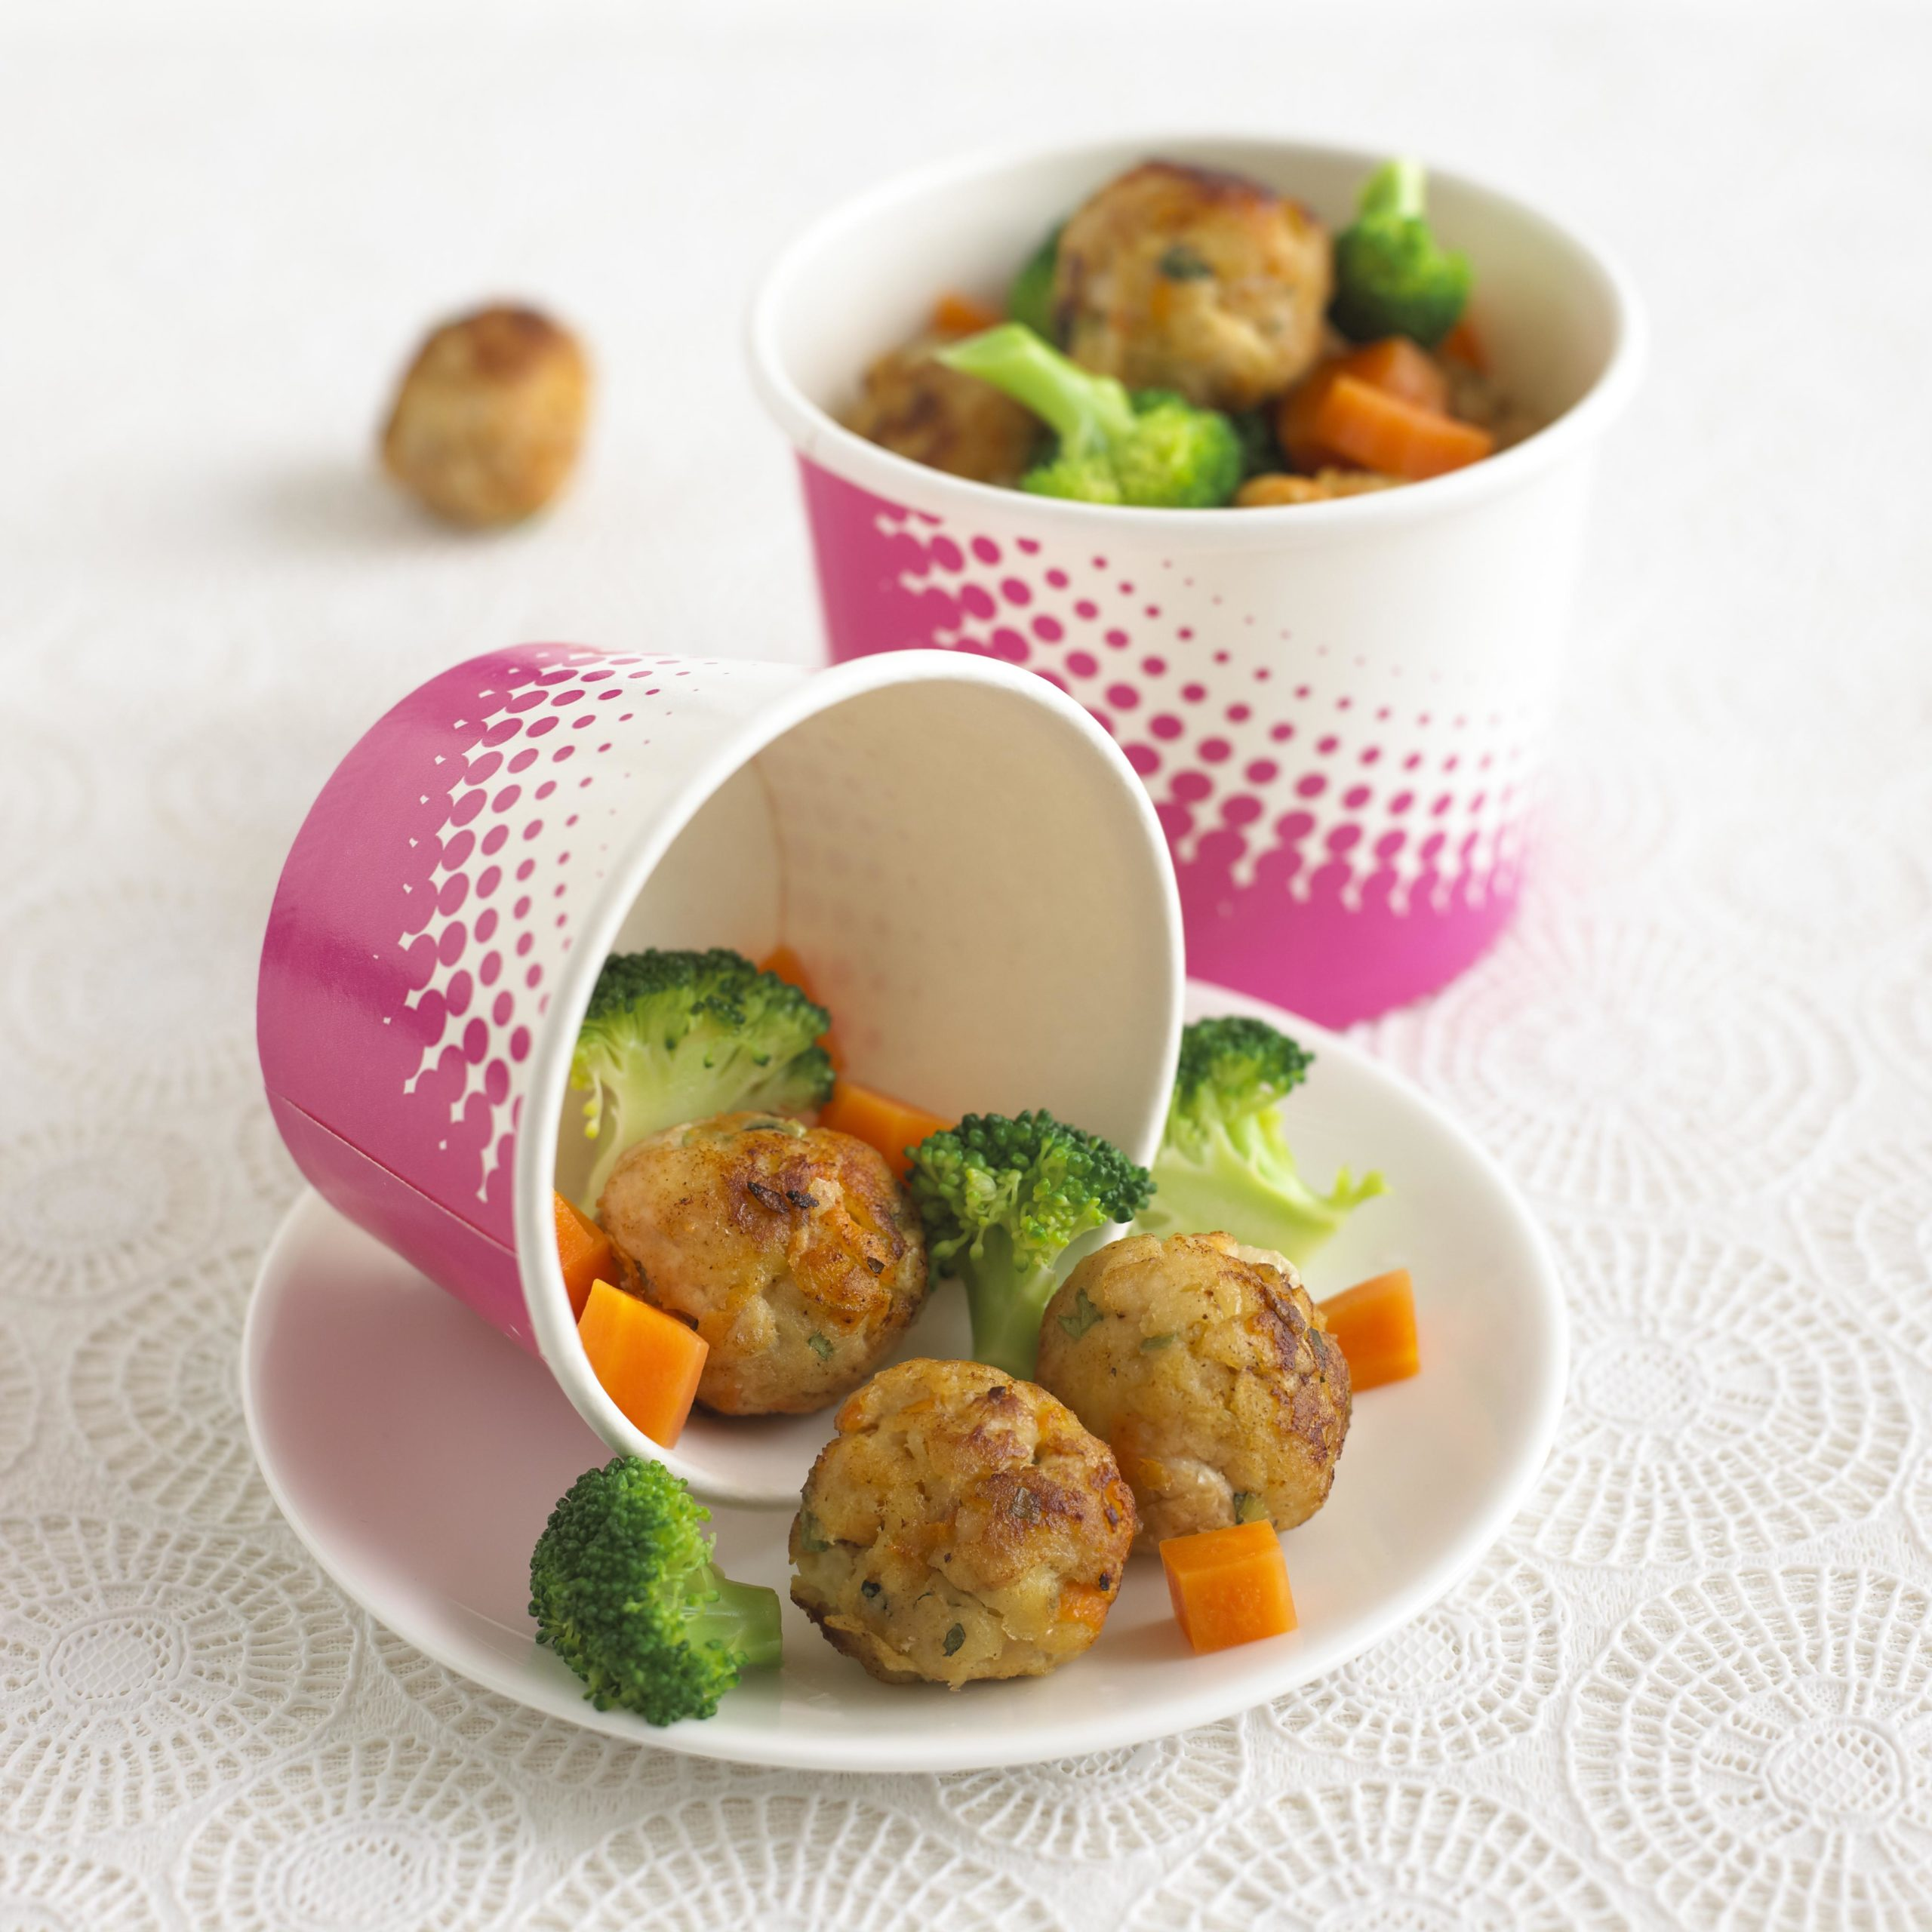 Mini Chicken Balls with Apple & Carrot Recipe by Annabel Karmel